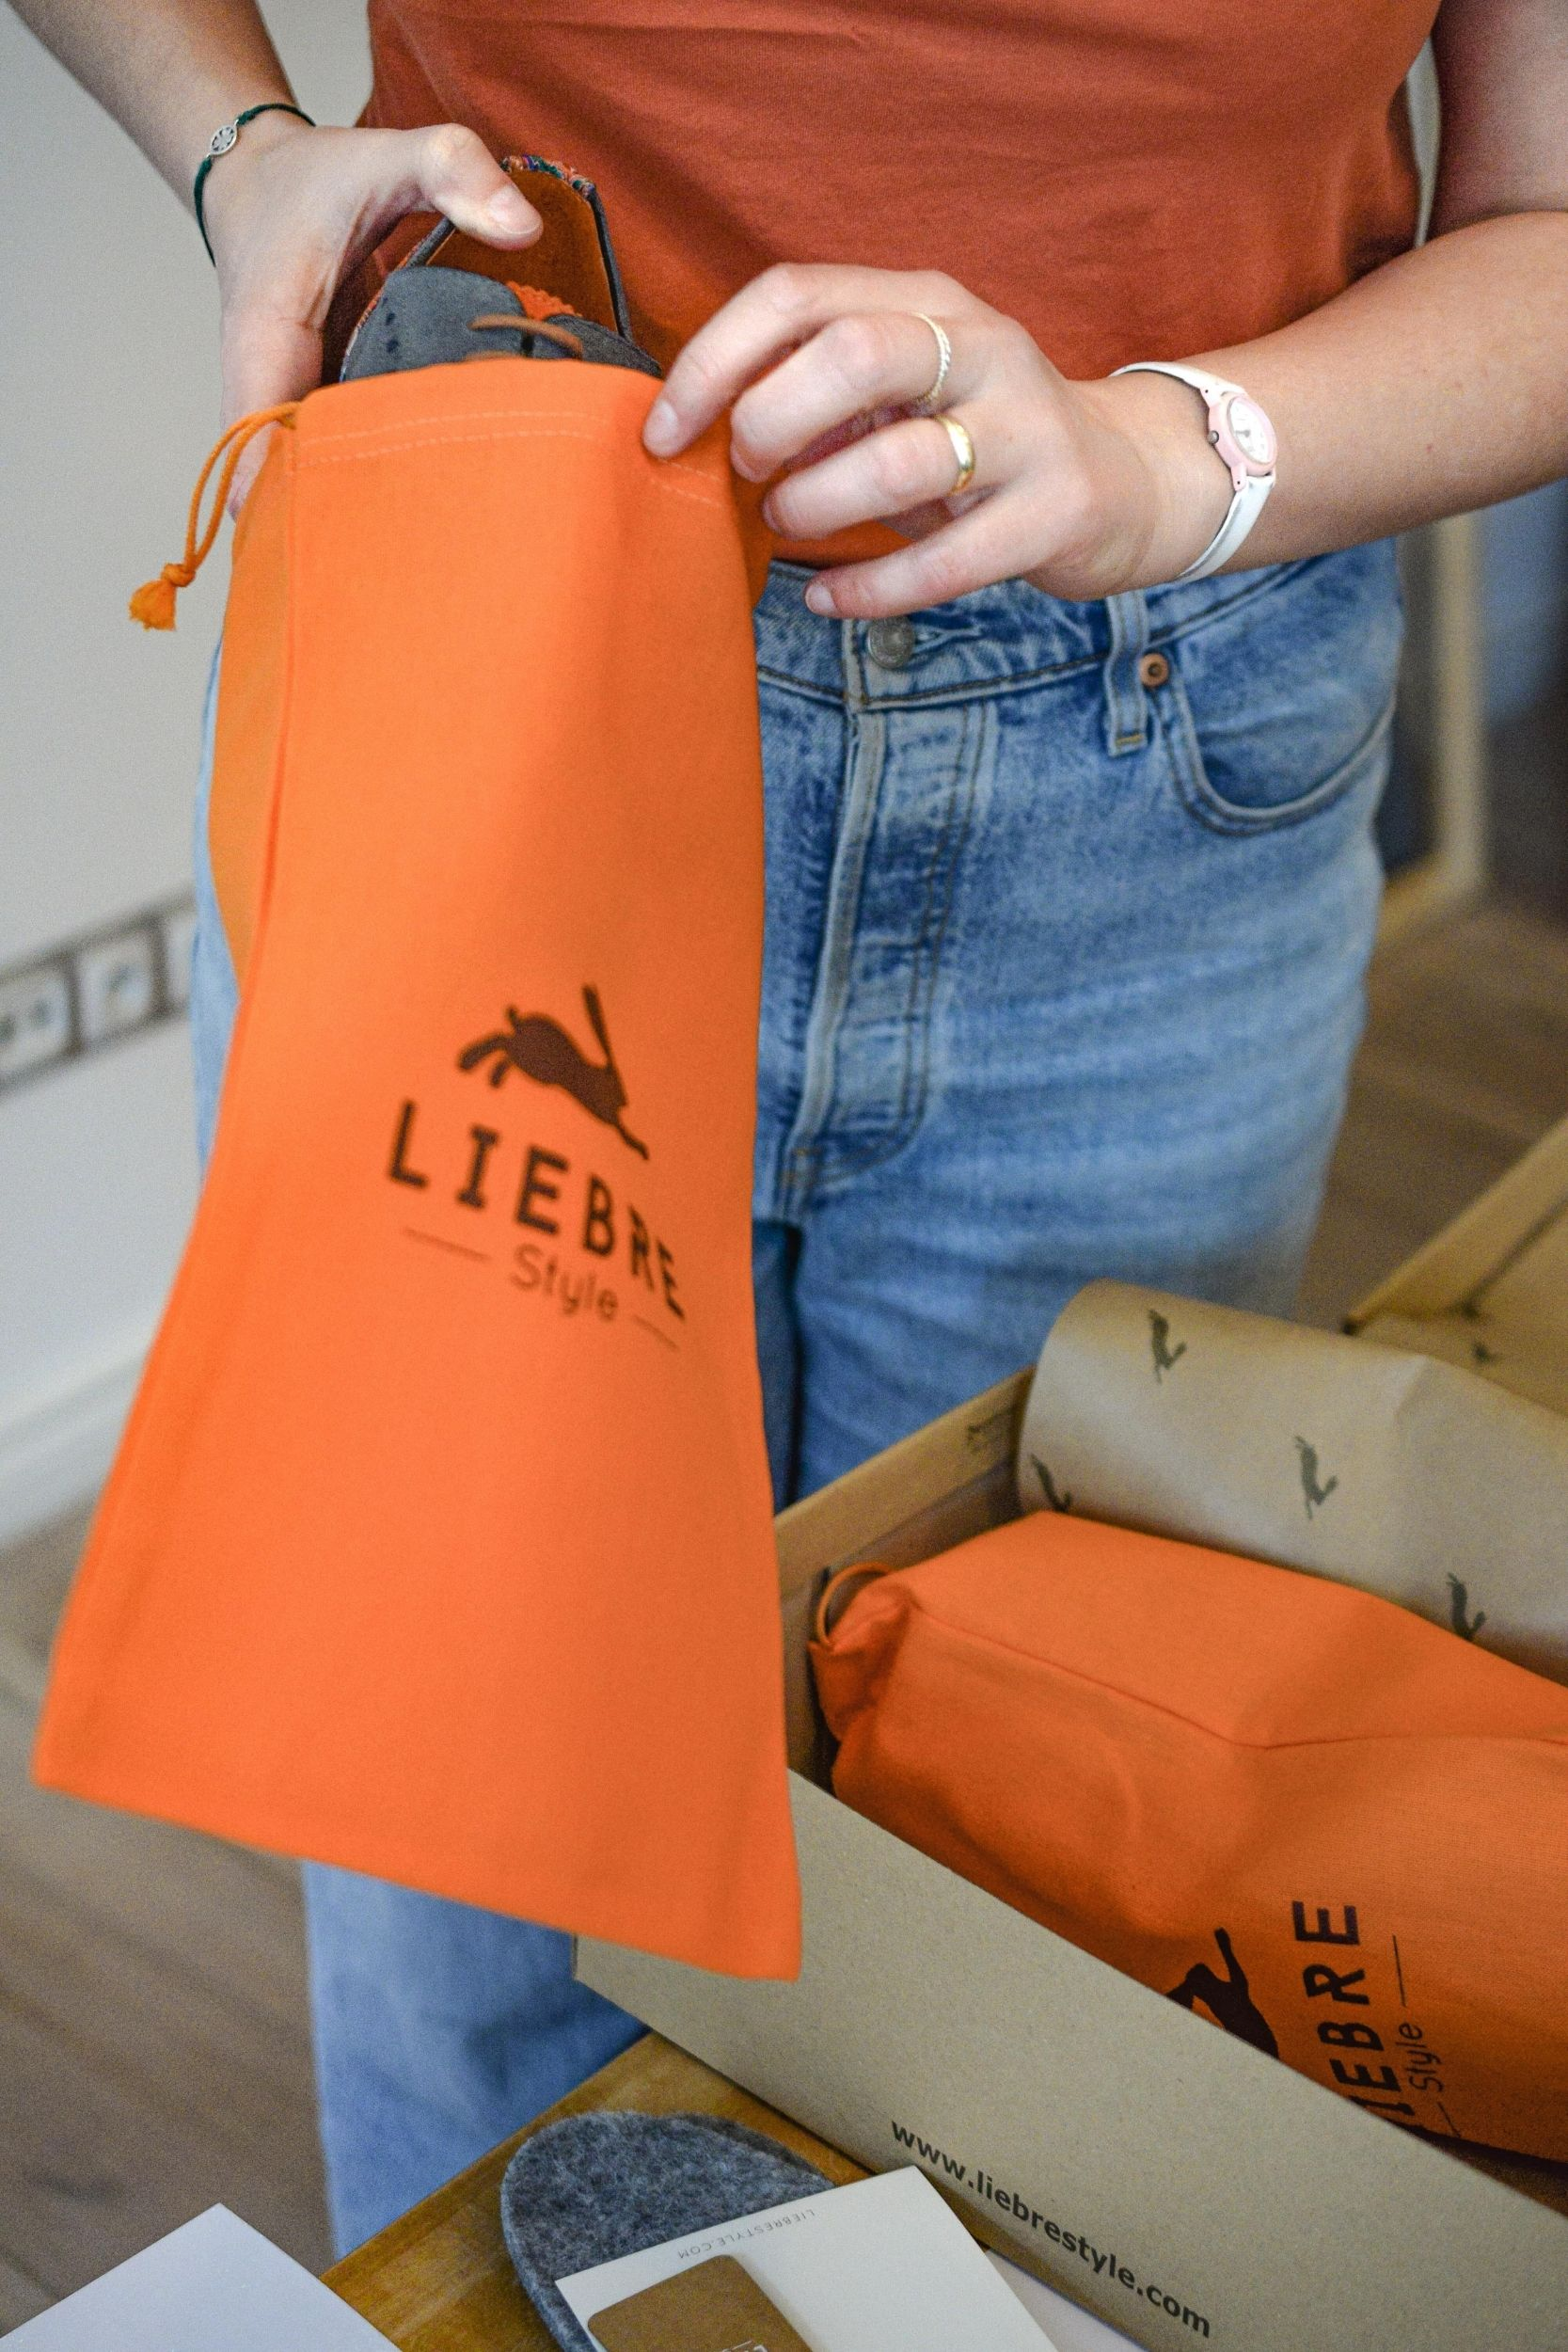 cotton bags to protect oxford shoes by liebre style